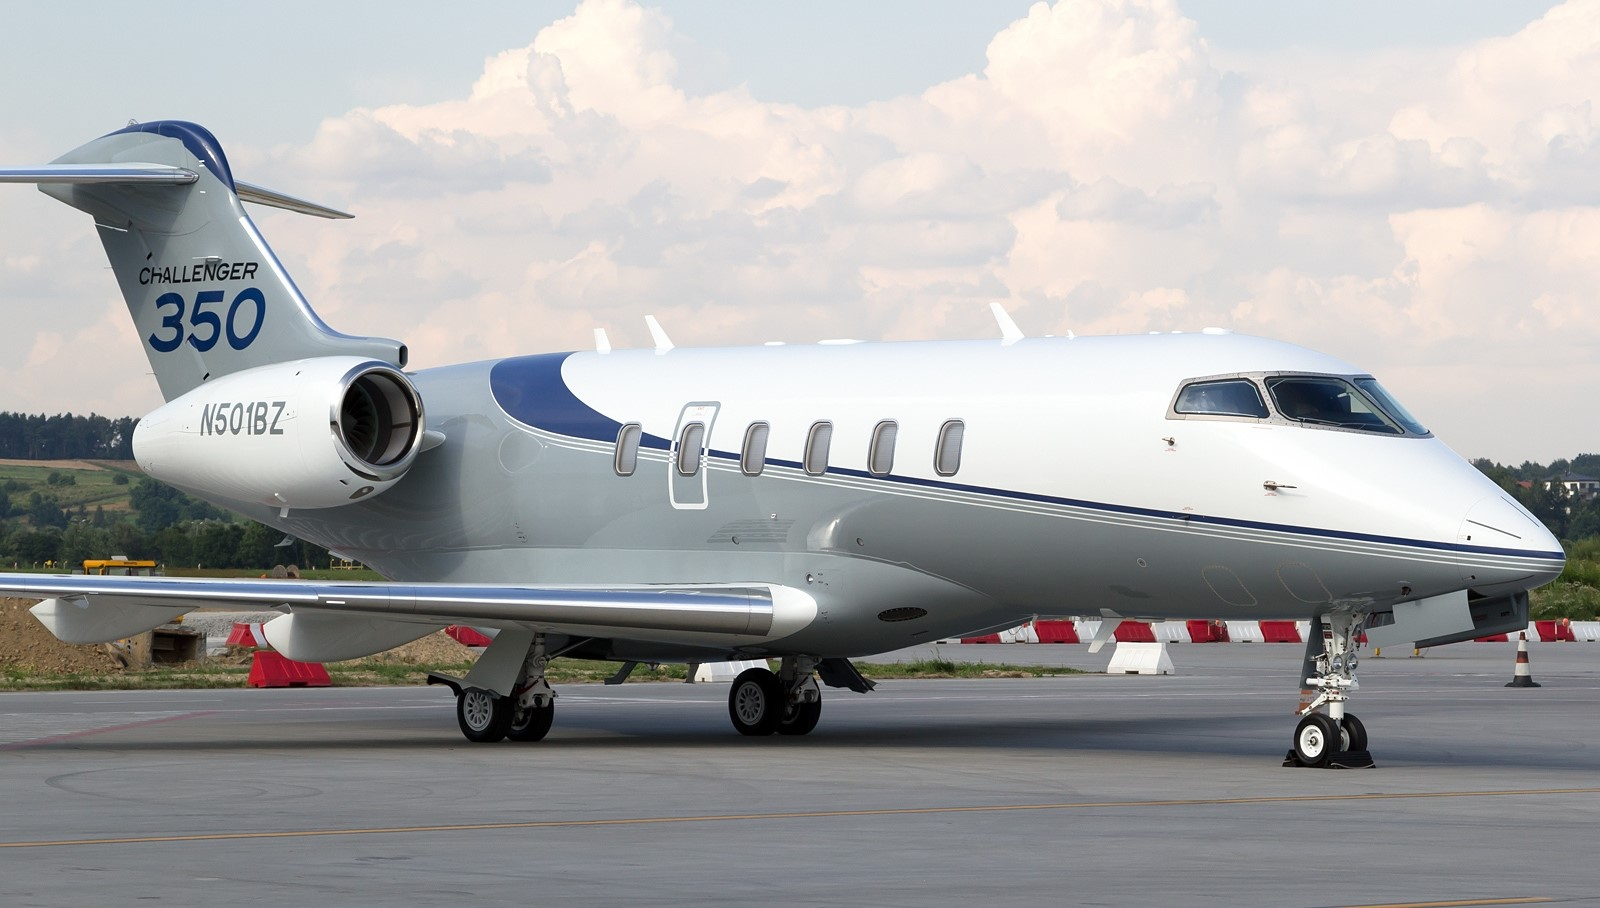 bombardier challenger 350 aircraft image